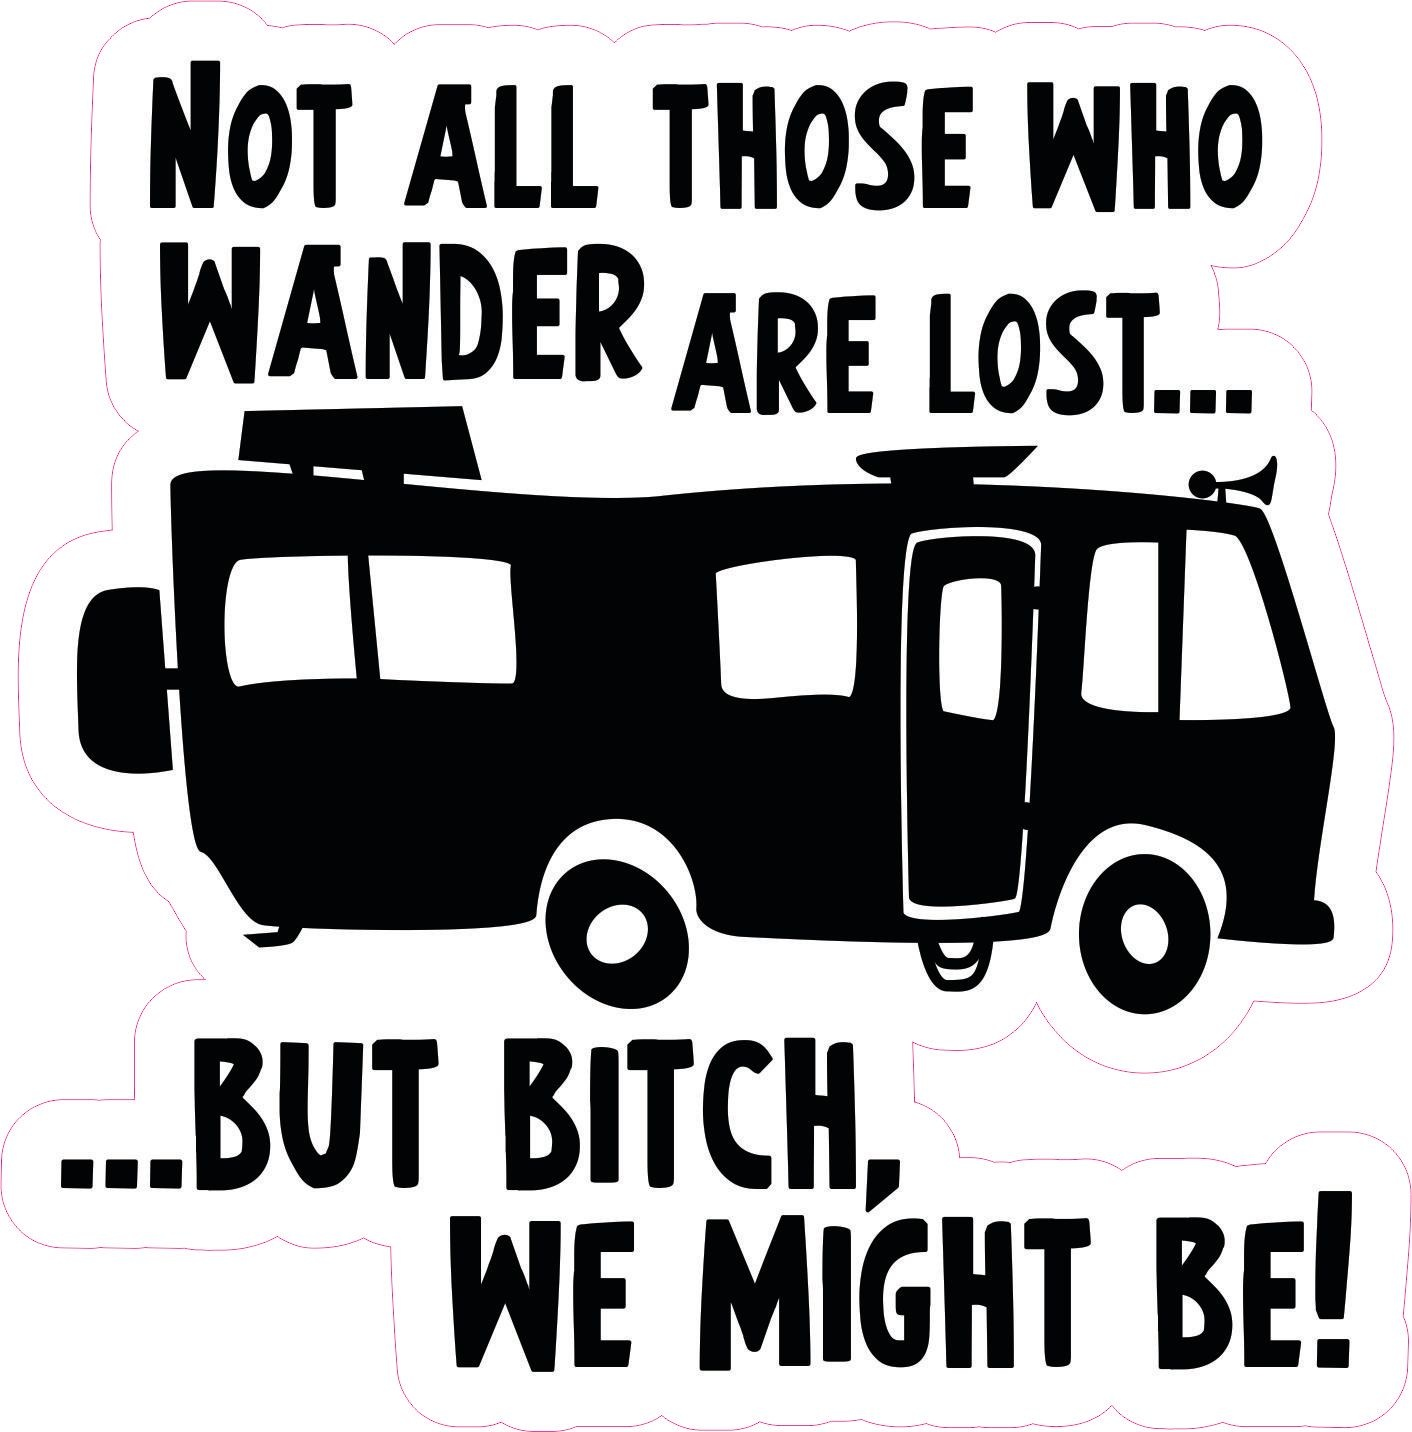 Not All Those Who Wander Are Lost, But Bitch We Might Be